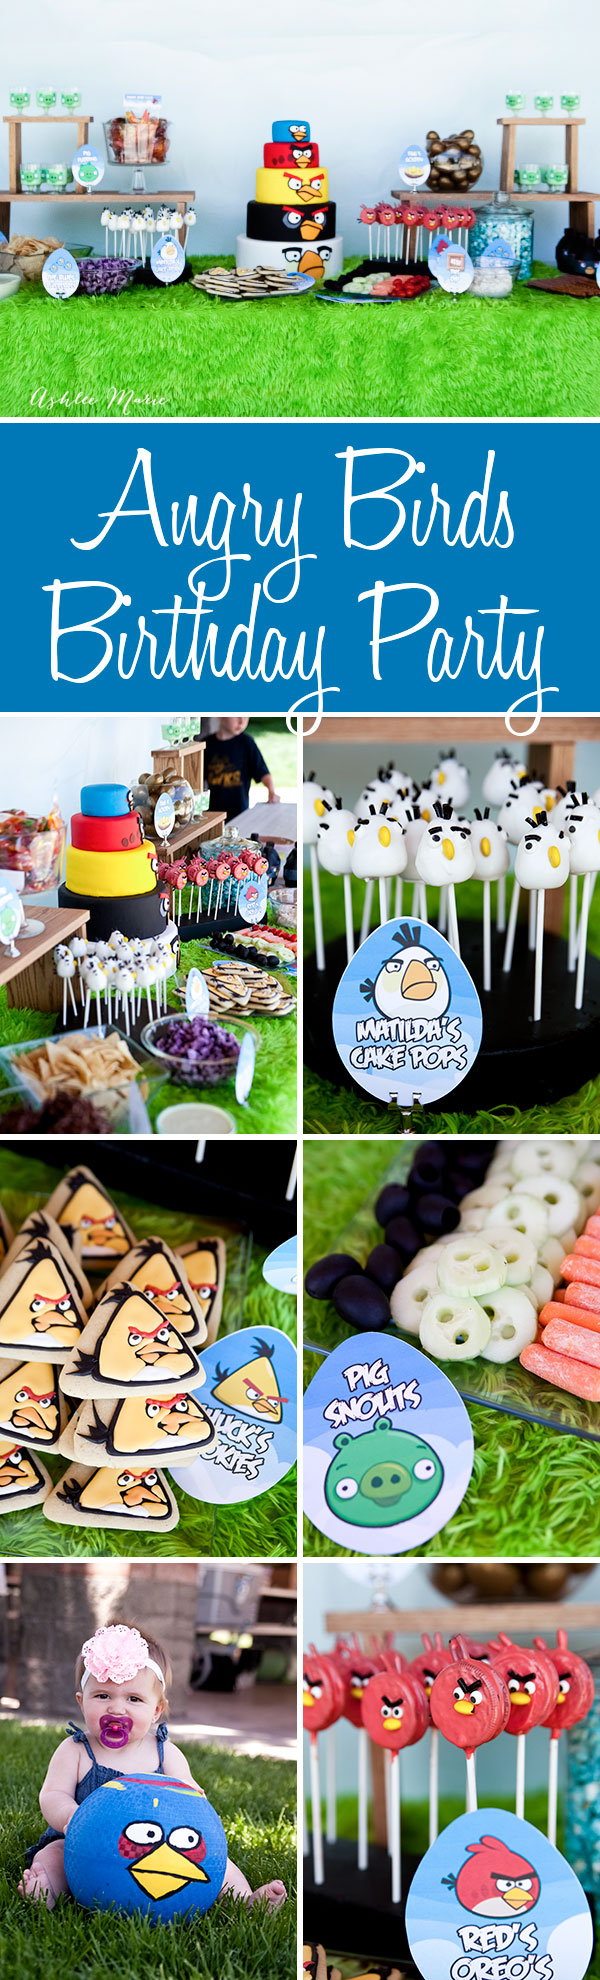 a fun angry birds birthday party - themed food, cake and activities